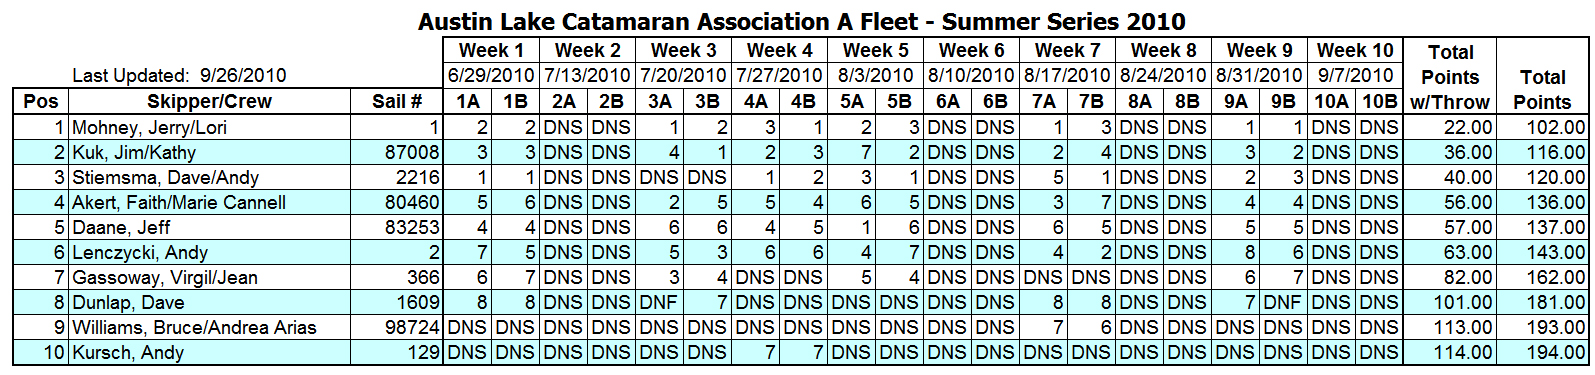 2010 Summer Portsmouth A Fleet Results